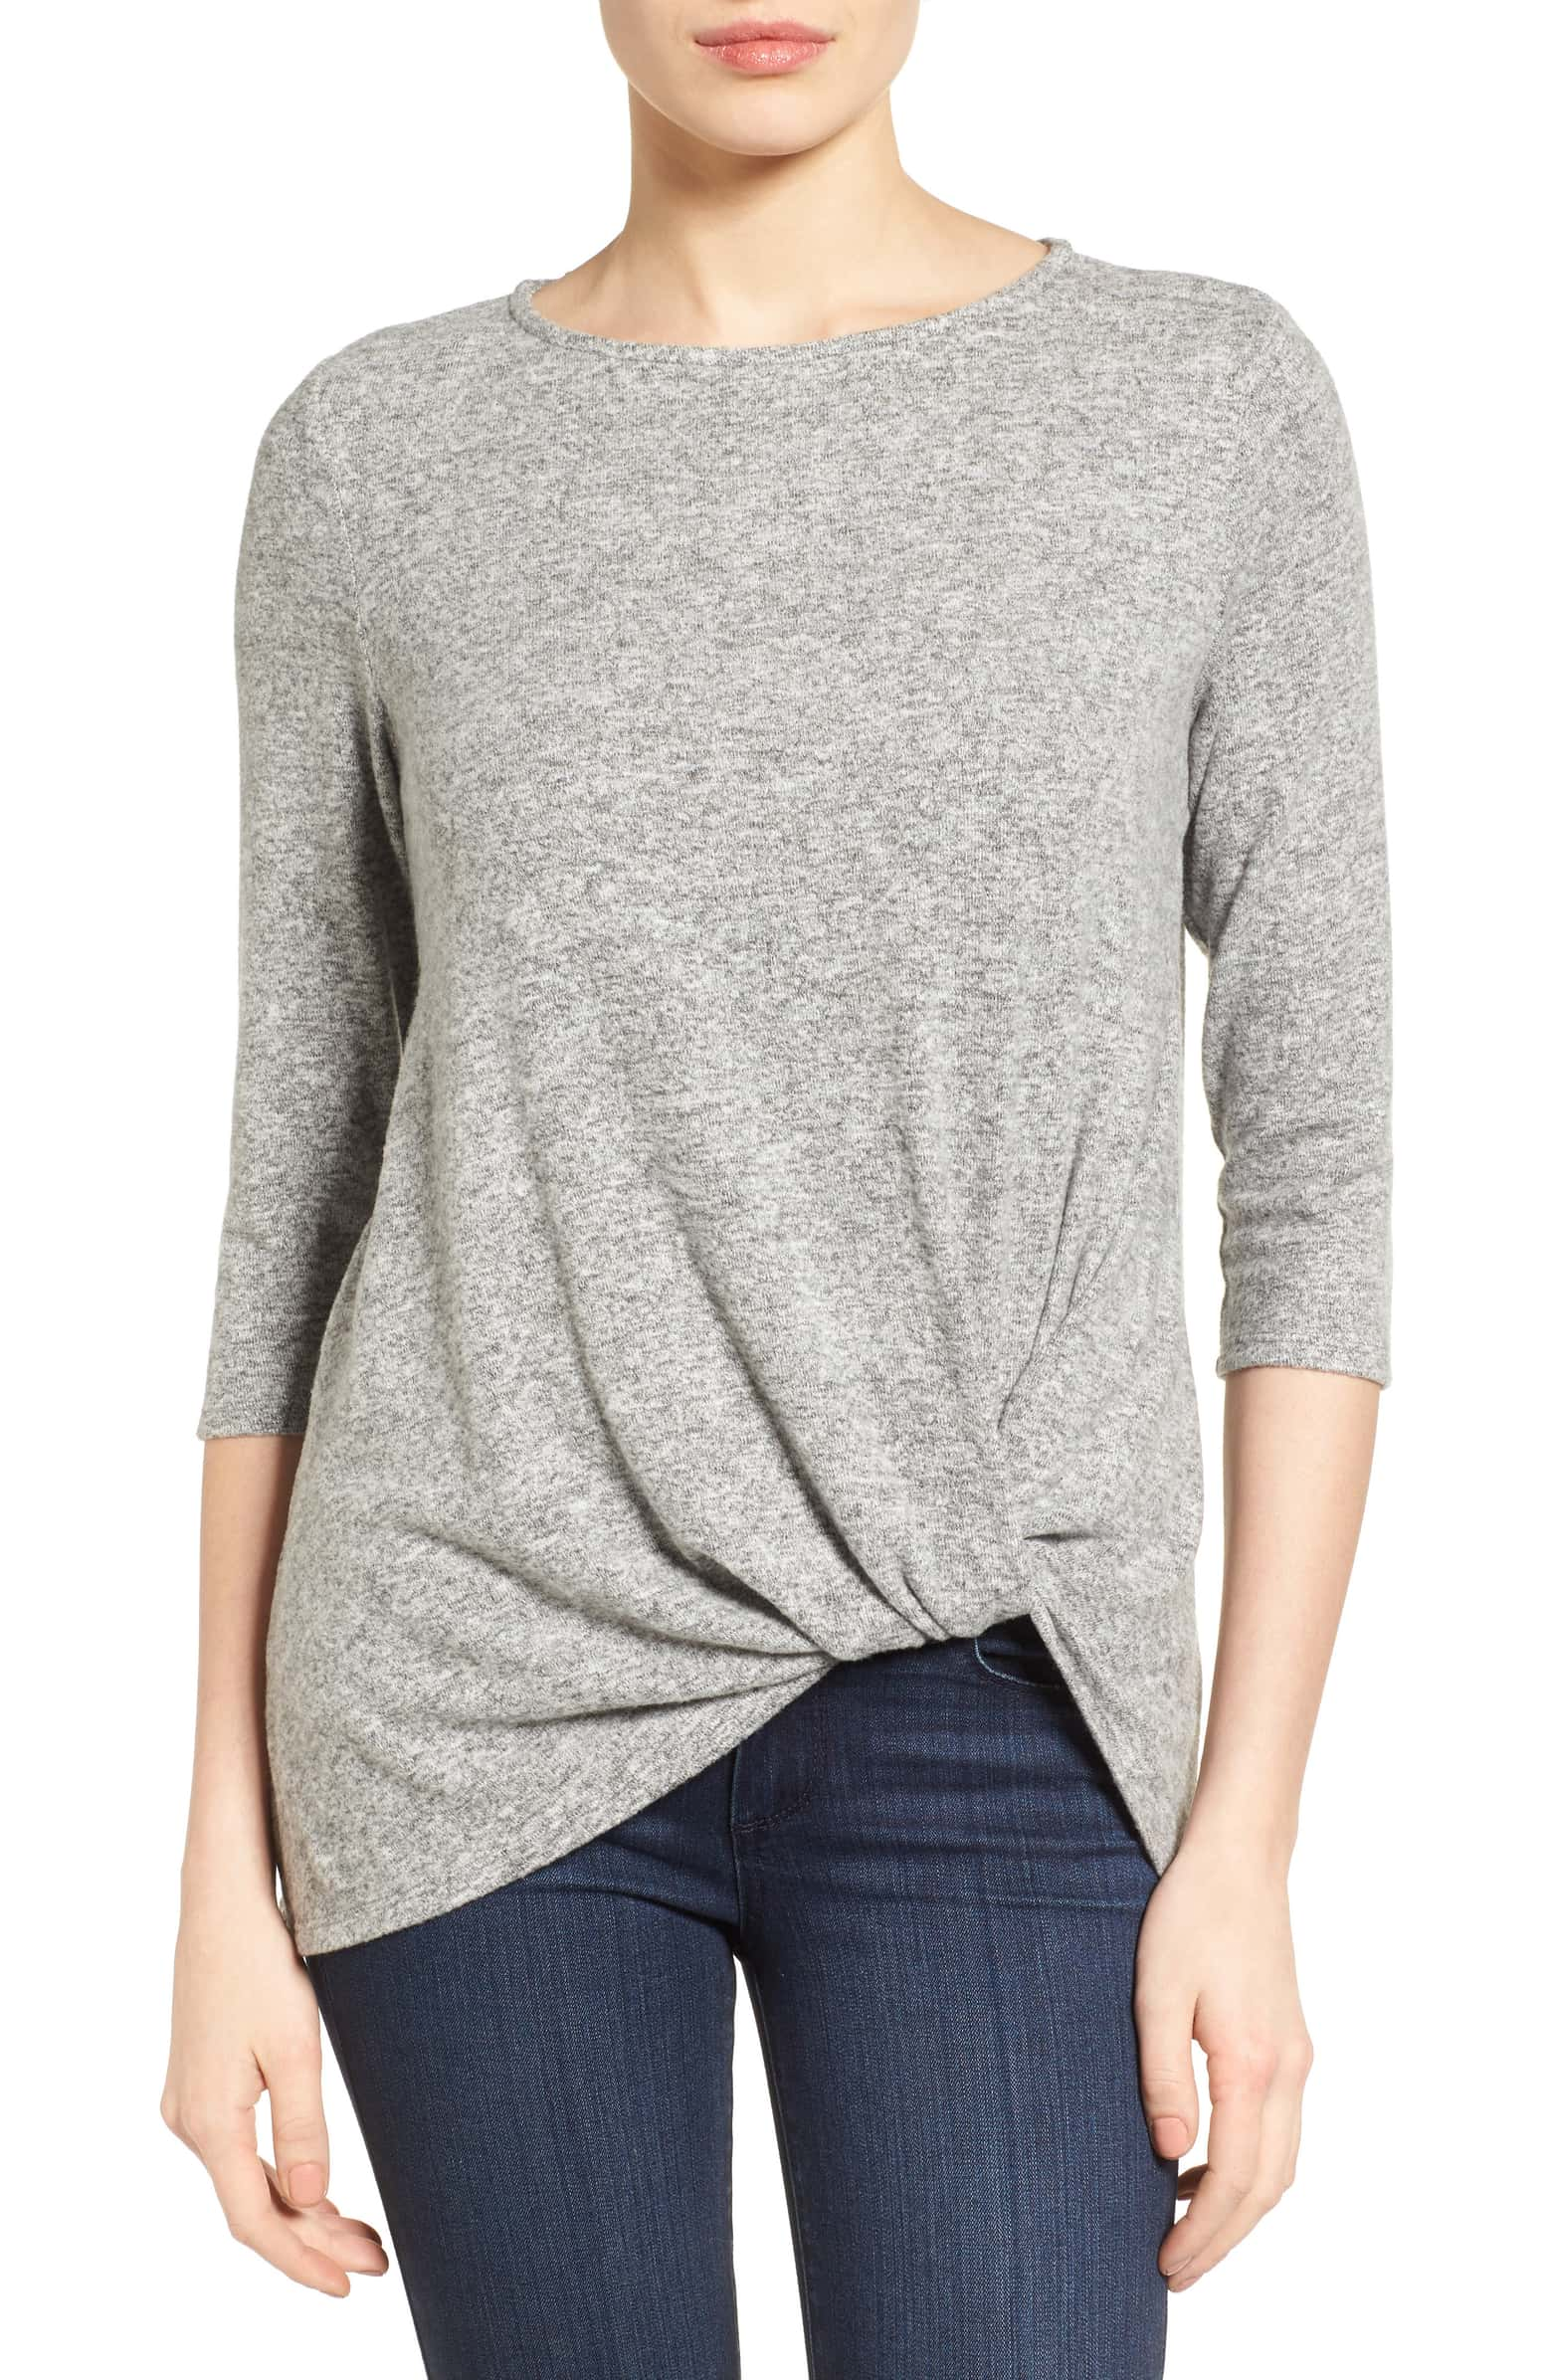 Nordstrom Gibson Cozy Twist Top, Size XS